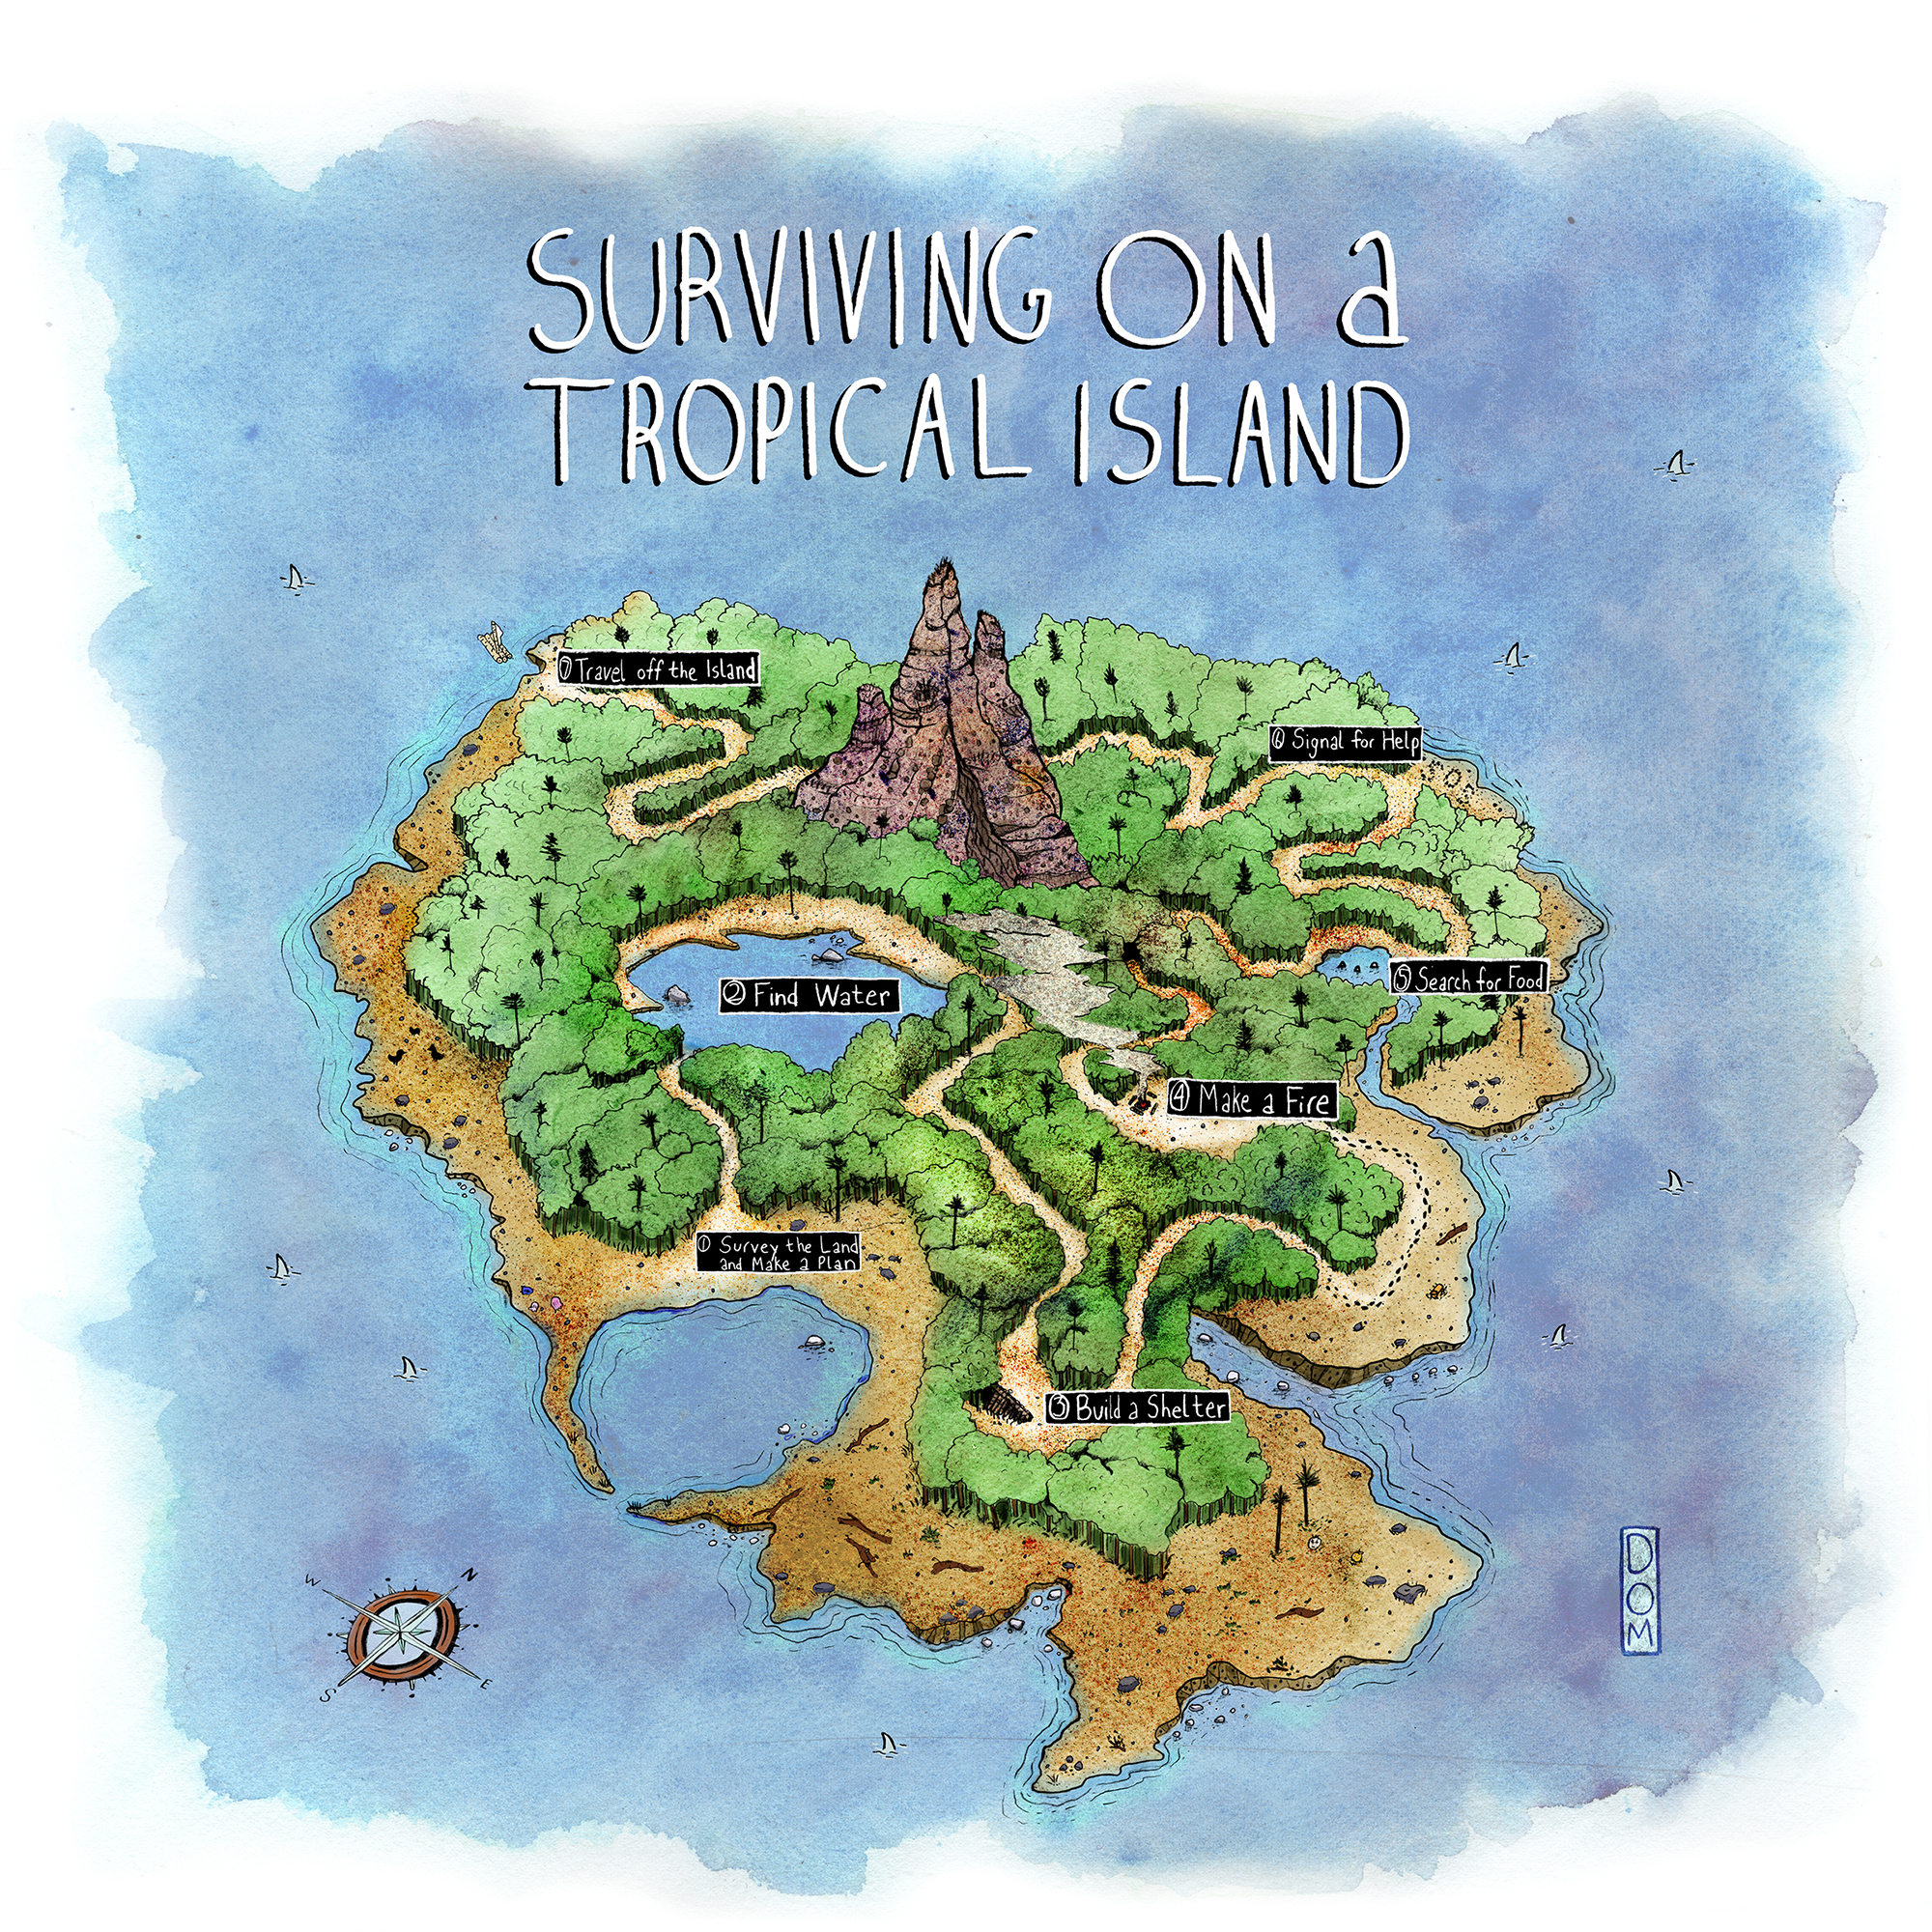 Dom_Civiello_Surviving_on_a_Tropical_Island_Map_Web.jpg